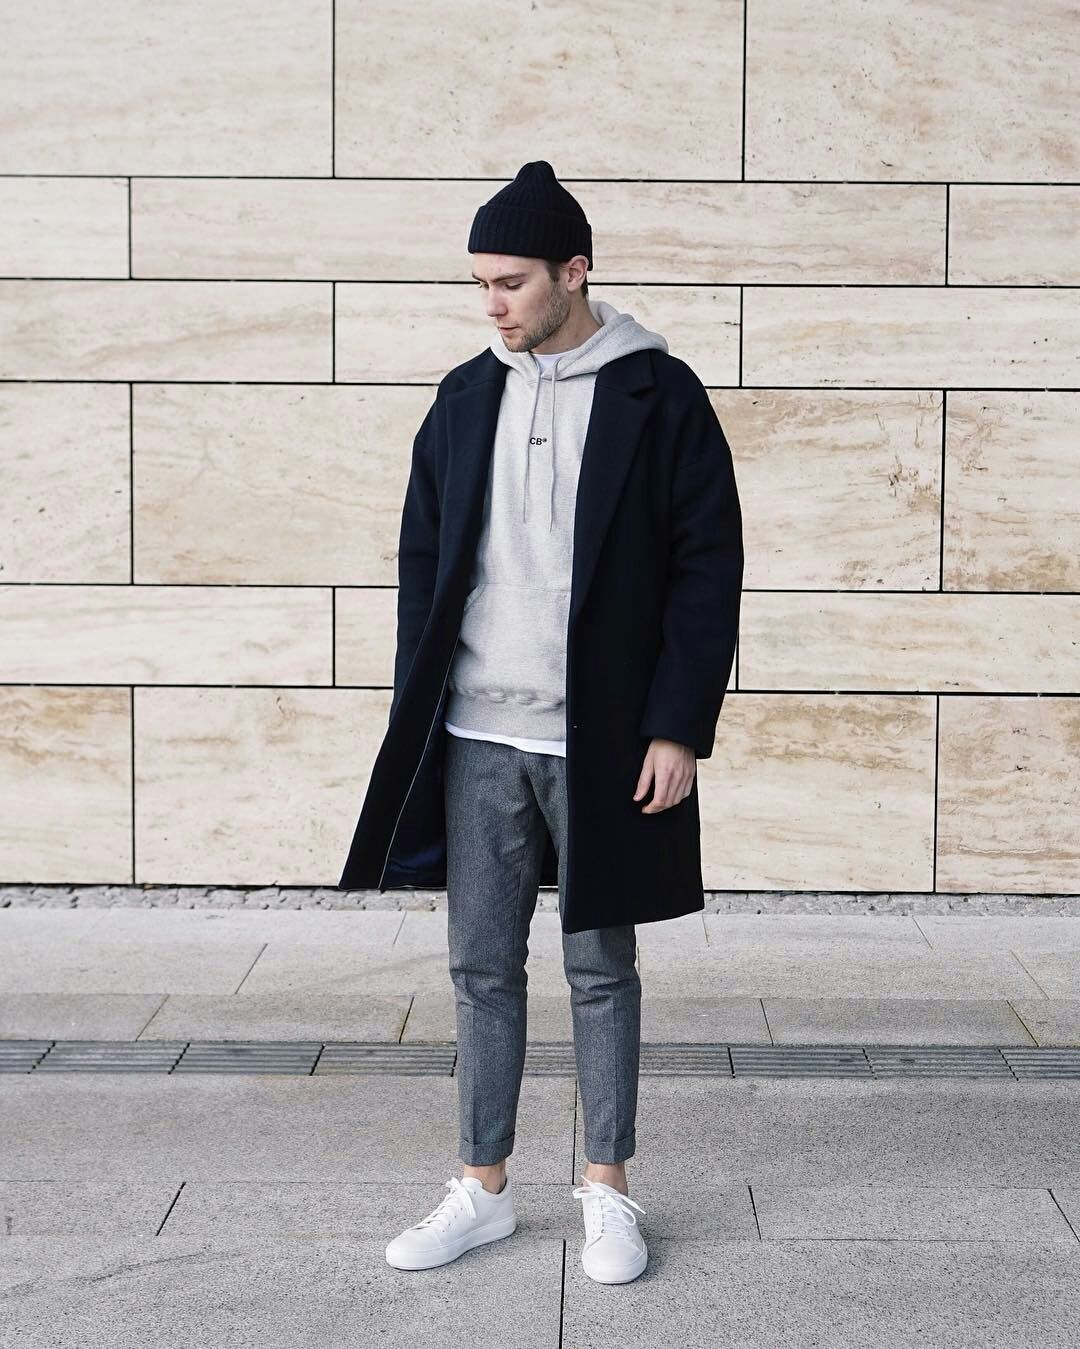 dbab604b5 6 Simple Winter Street Style Looks For Guys Who Love To Wear Basics ...